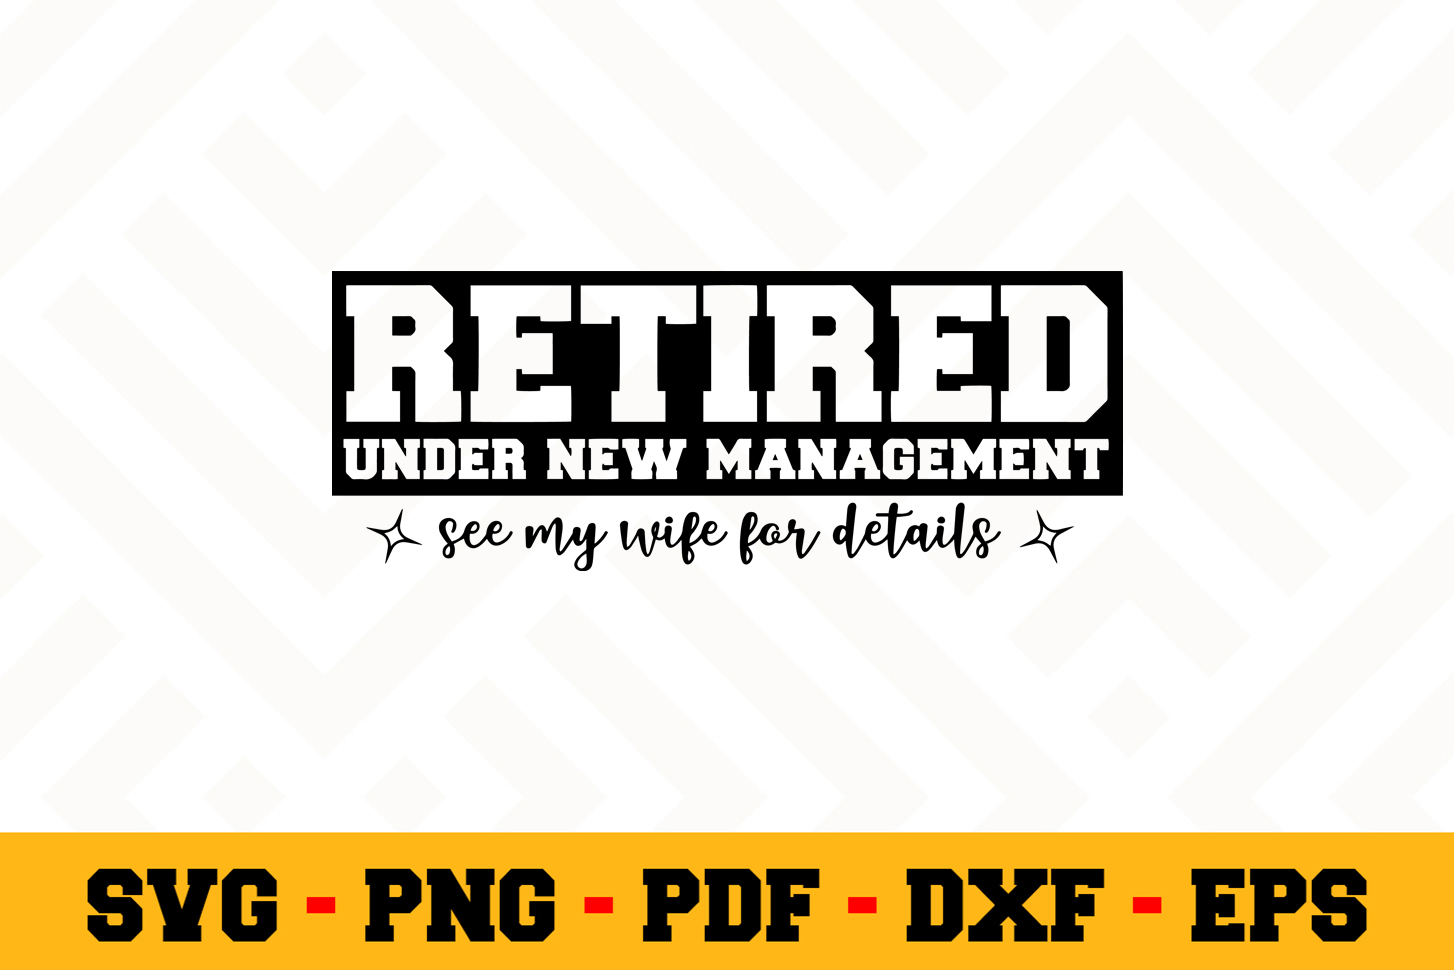 Retirement SVG Design n458 | Retired SVG Retirement Cut File example image 1